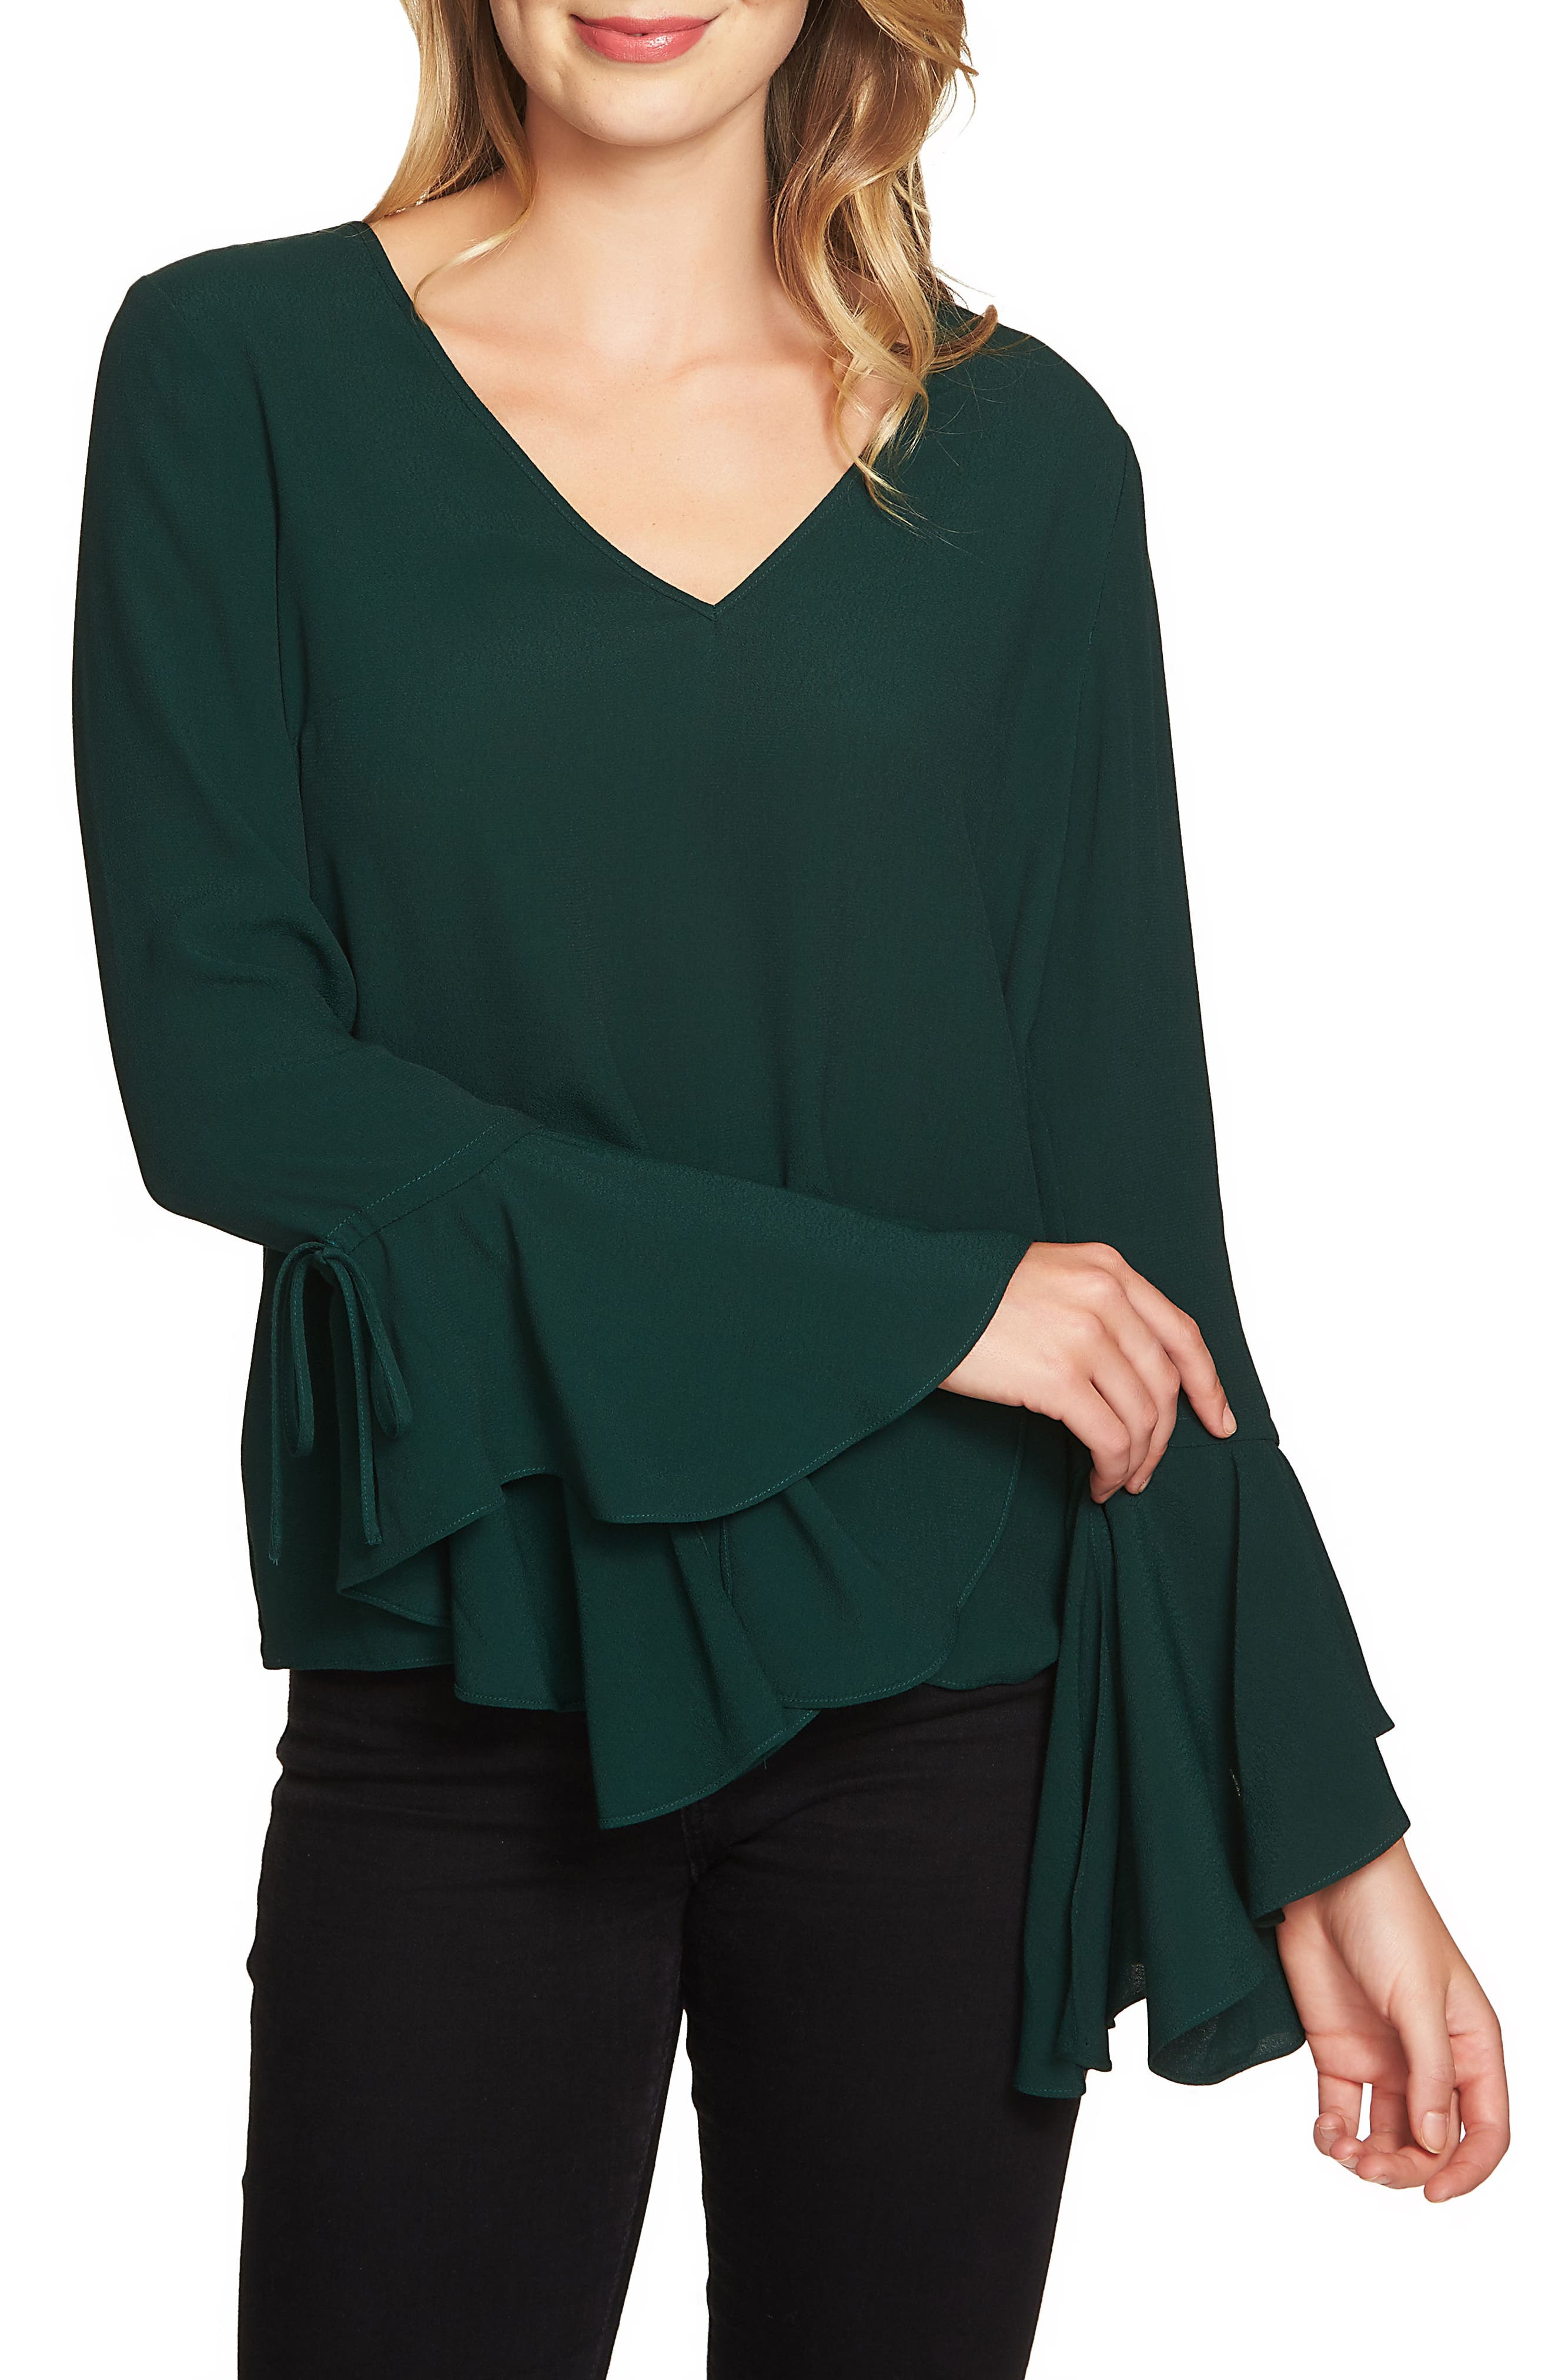 Cascade Sleeve Blouse,                         Main,                         color, Jasper Green